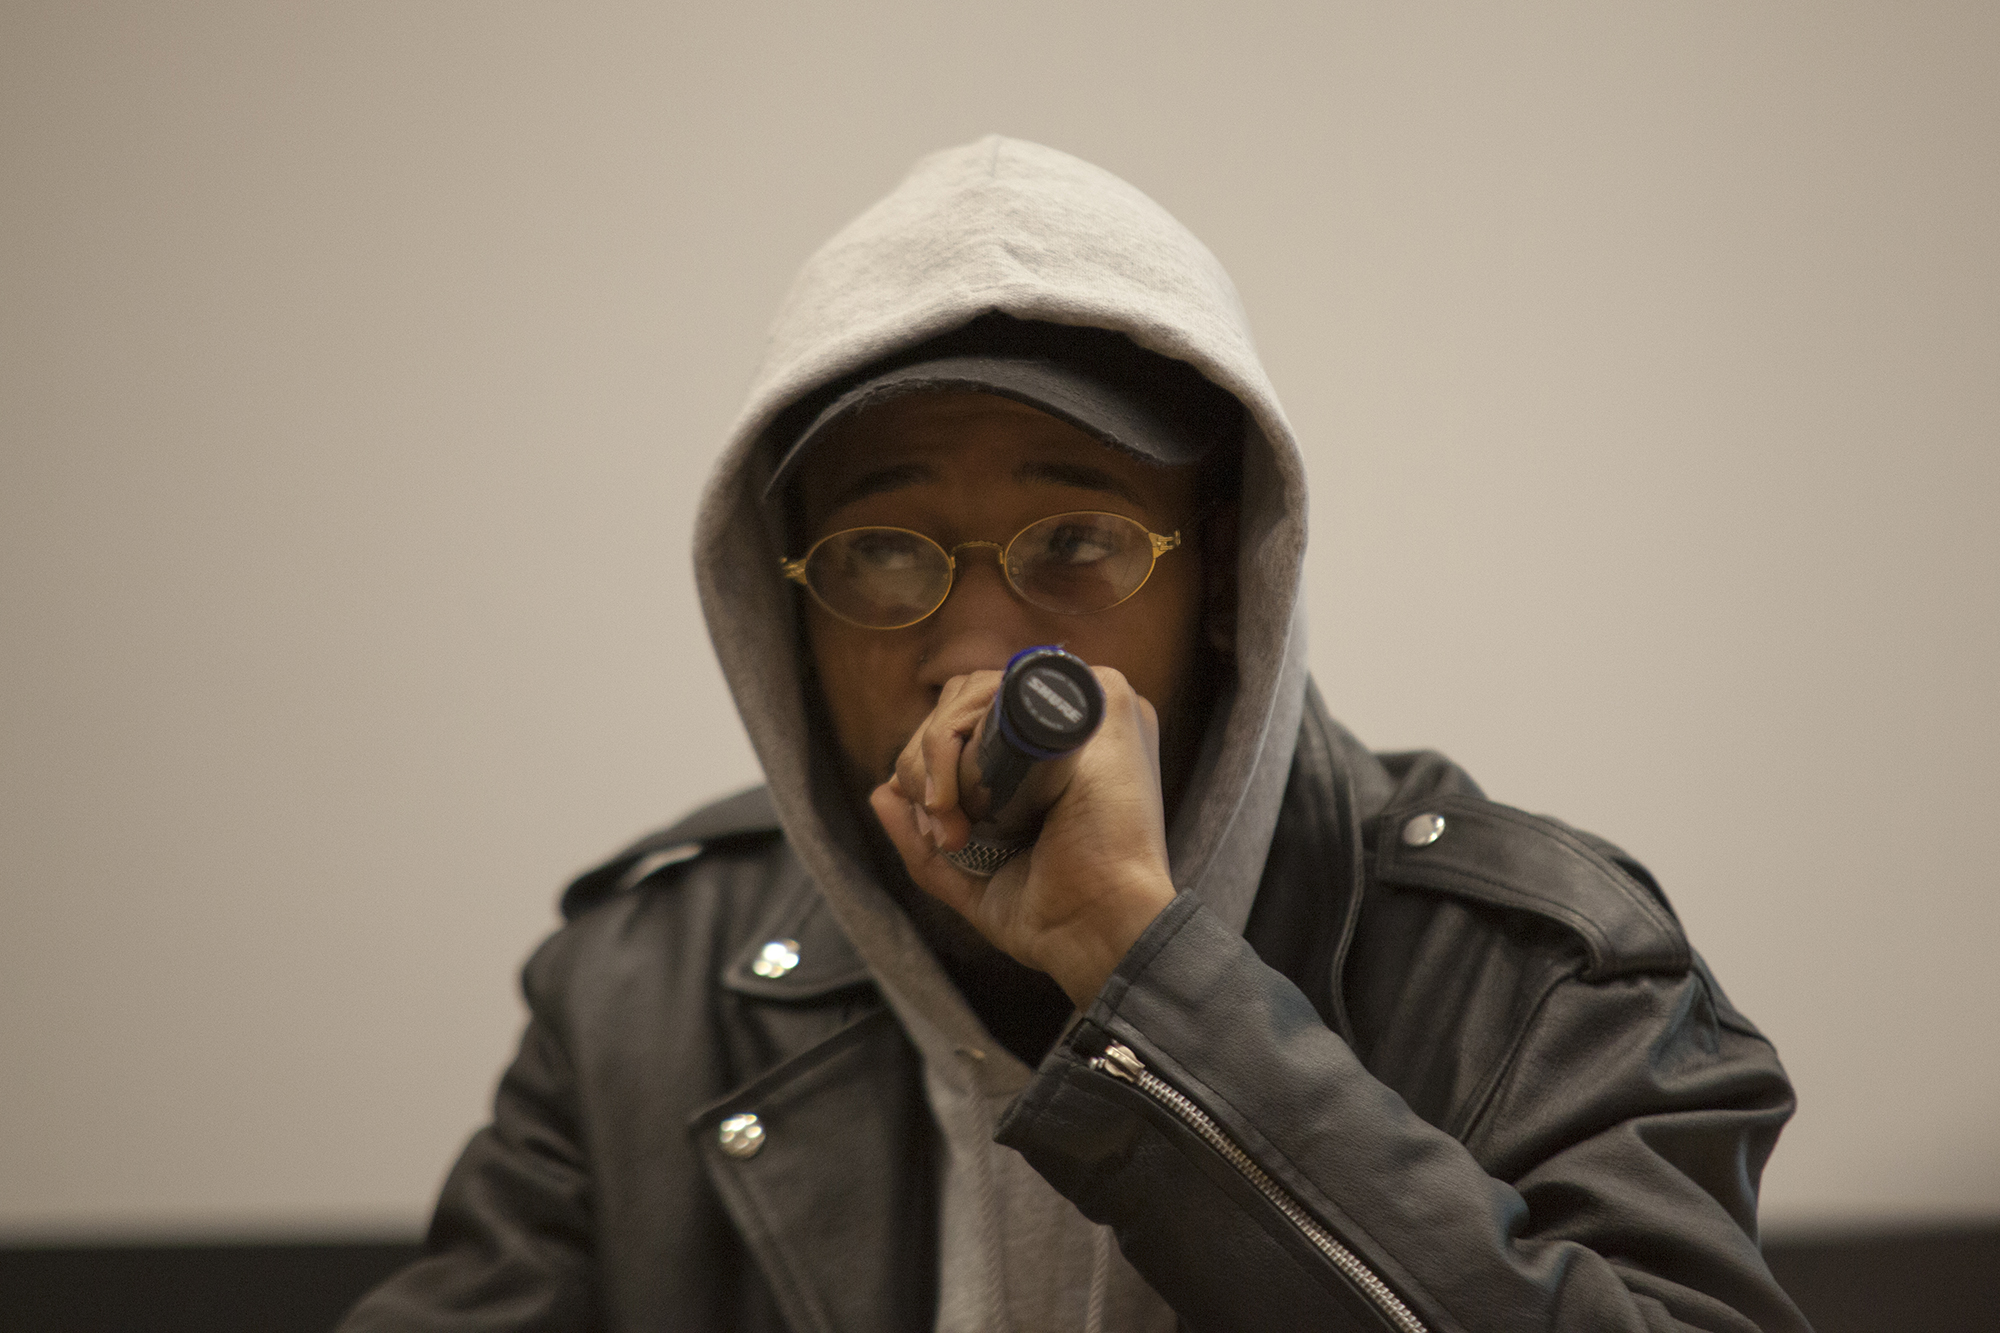 Dondre Macfarland rapped for the crowd during his performance on Wednesday. <em>ERIC SCHMID/THE STATESMAN</em>